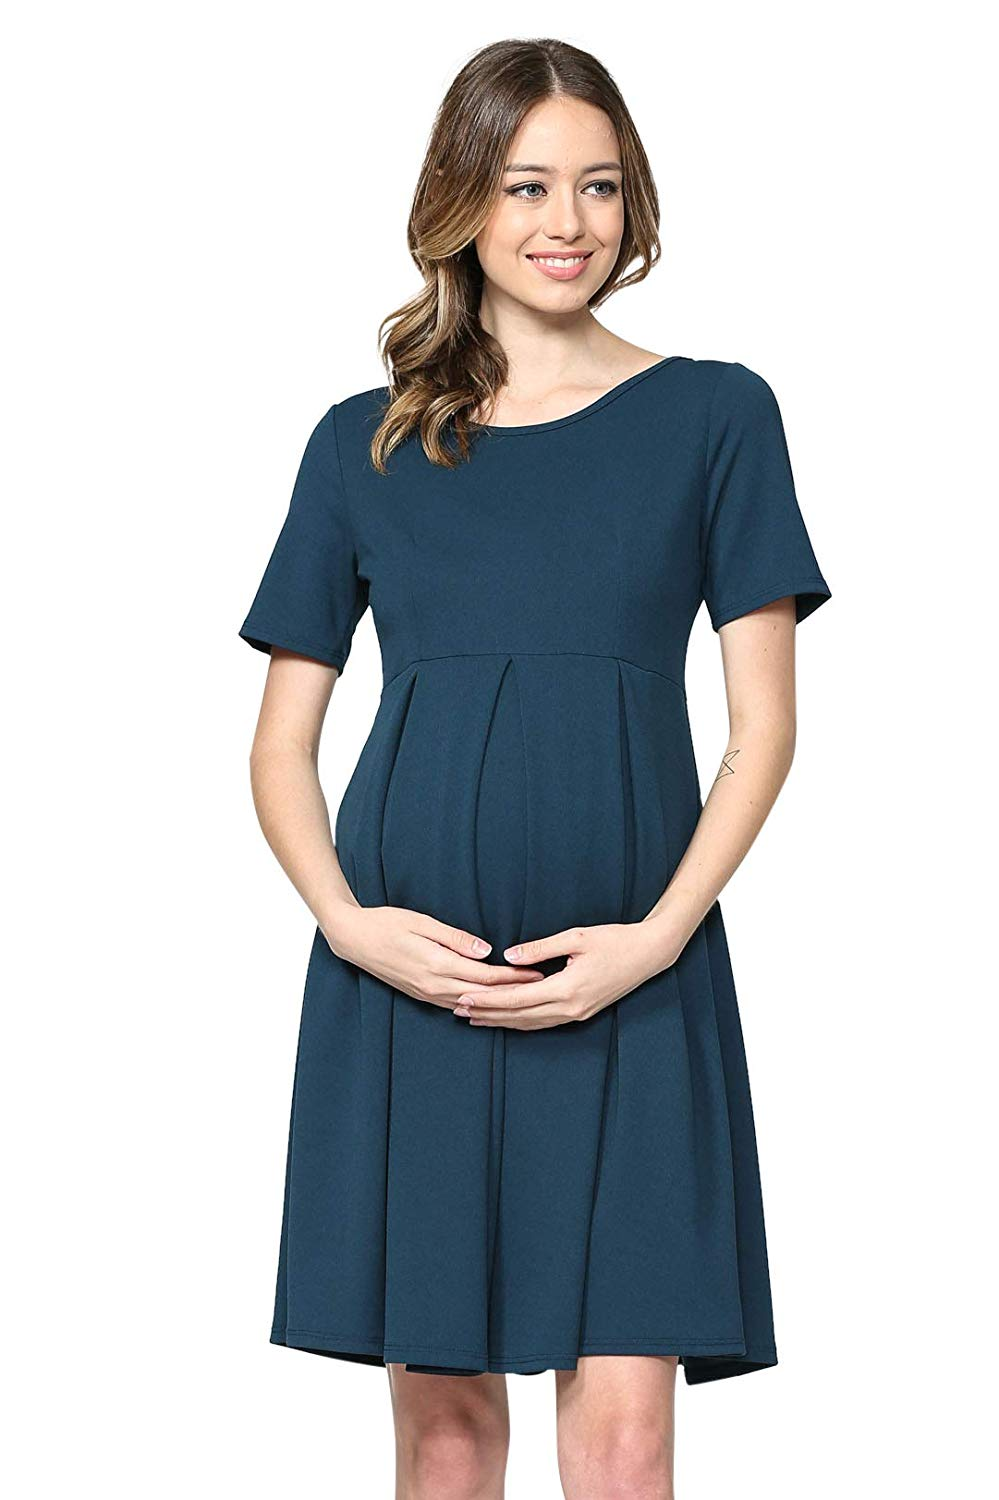 Teal Maternity Midi Dress